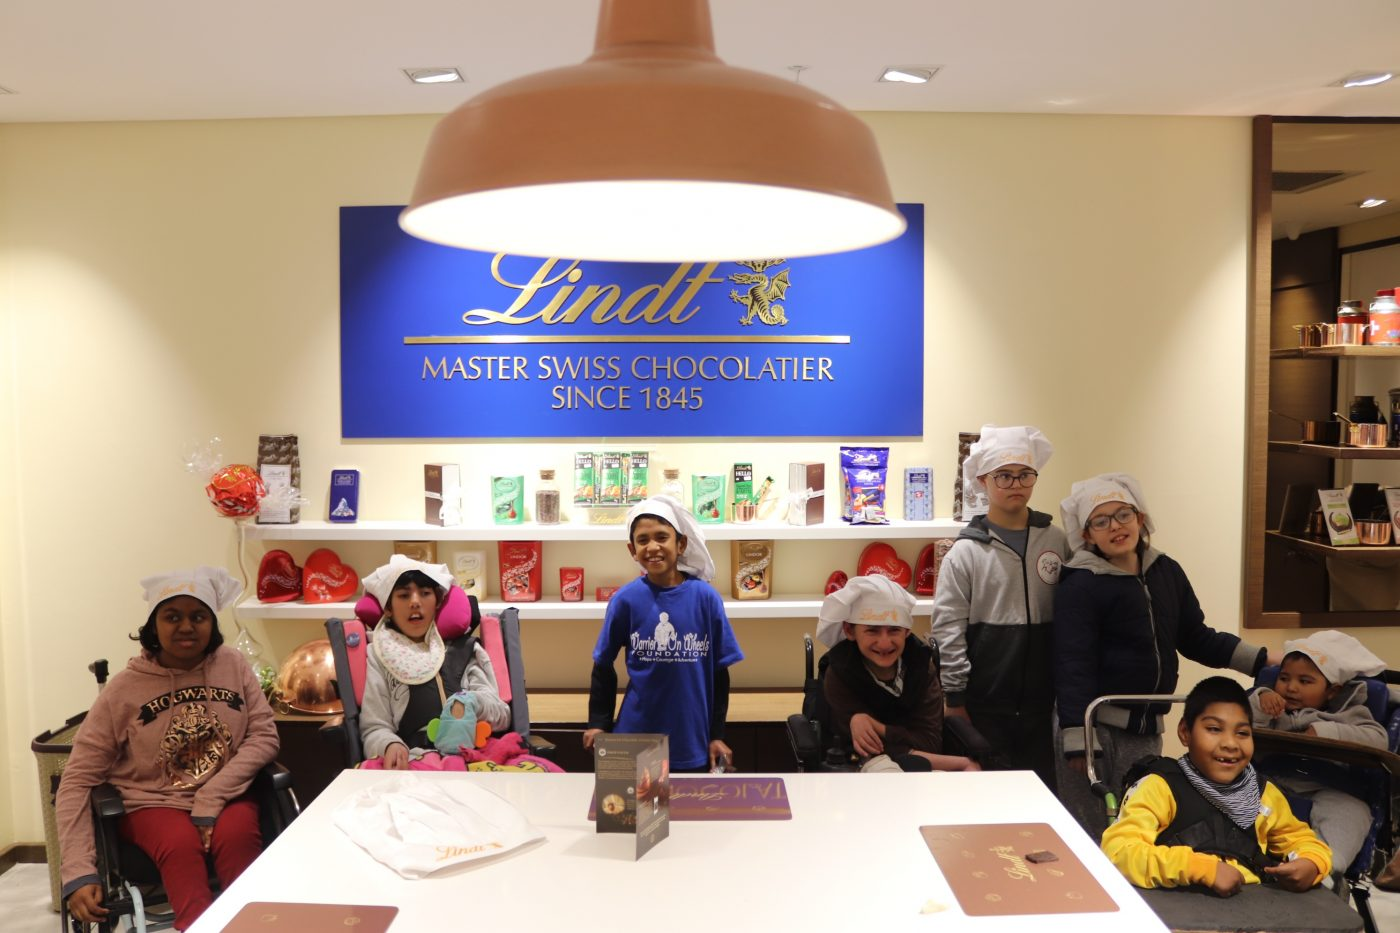 8 Children in front of the Lindt Chocolate Studio sign and stand